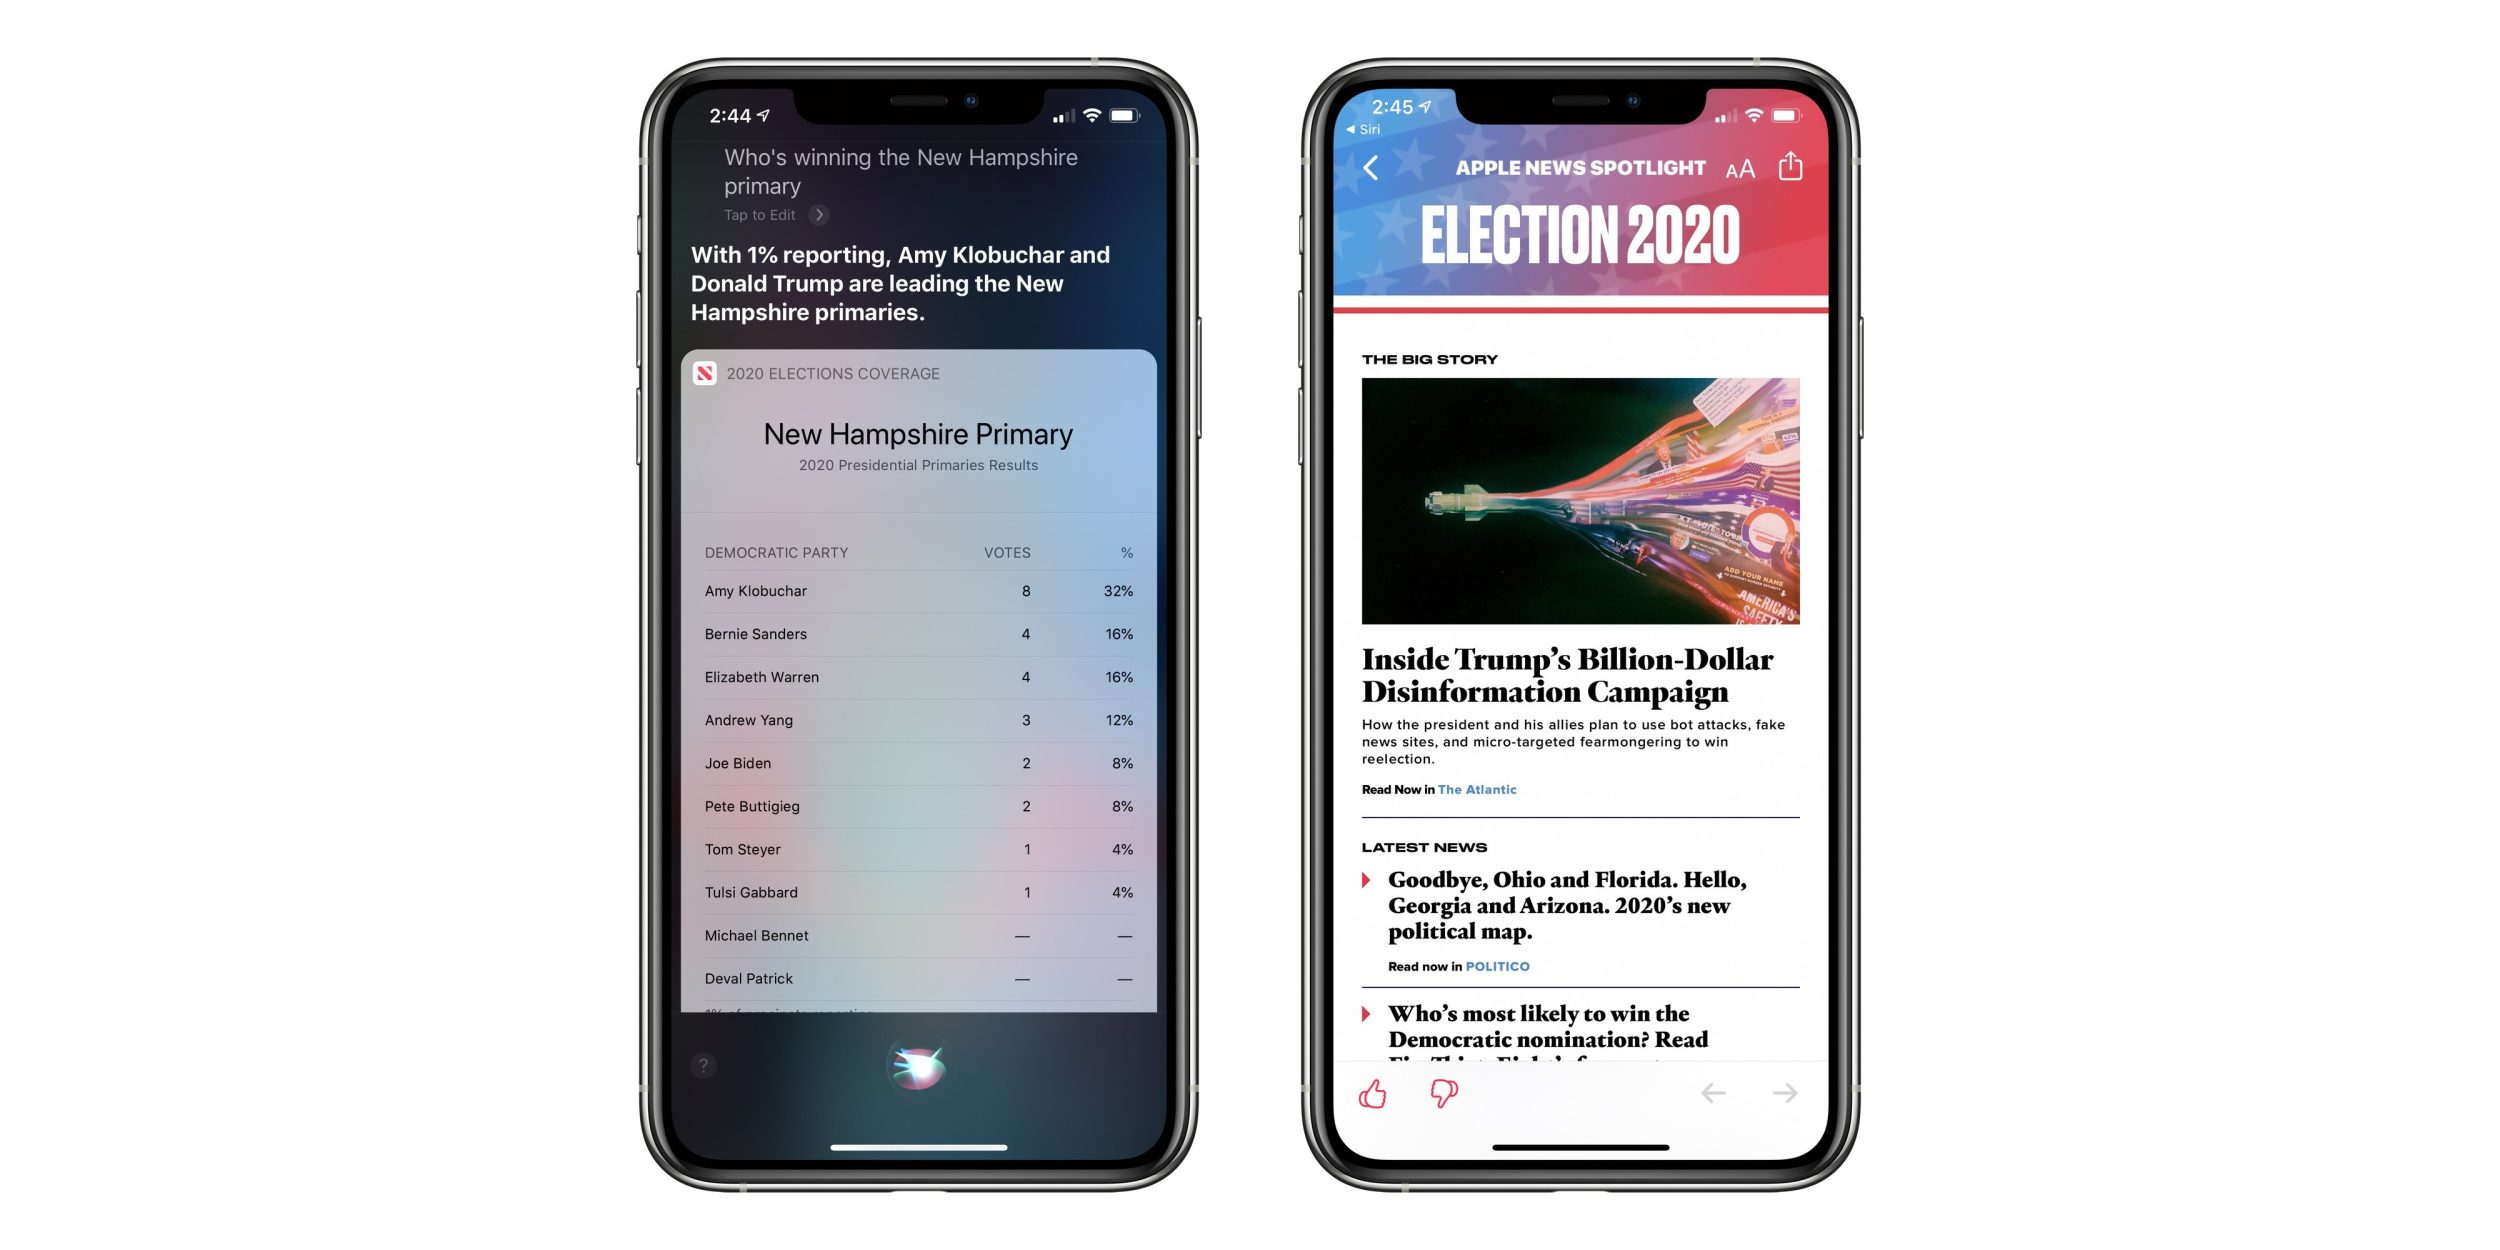 Siri Can Now Answer US Election Questions